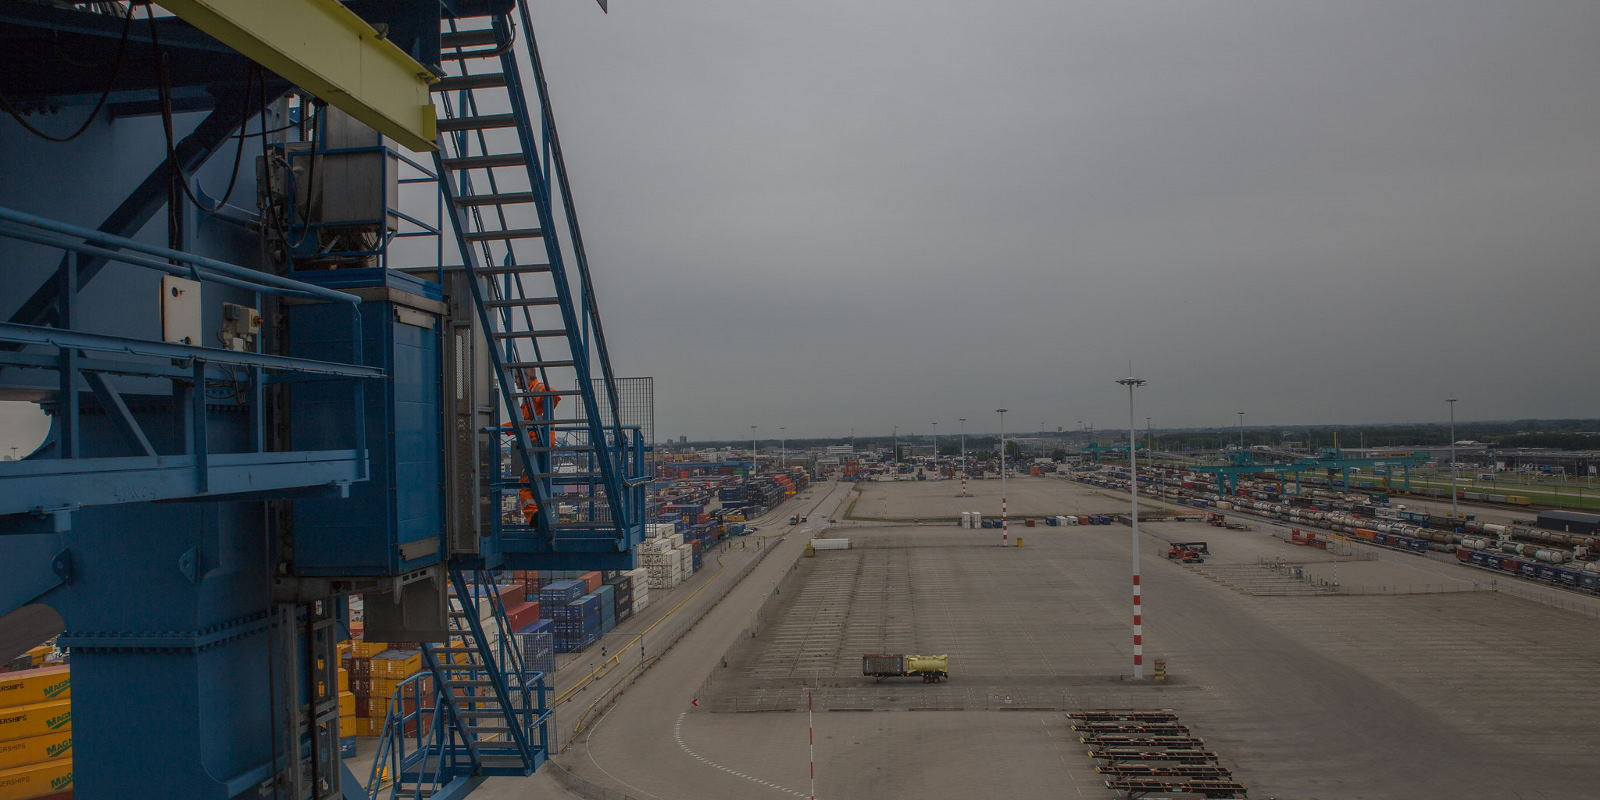 Scanclimber serving at Europe's largest port